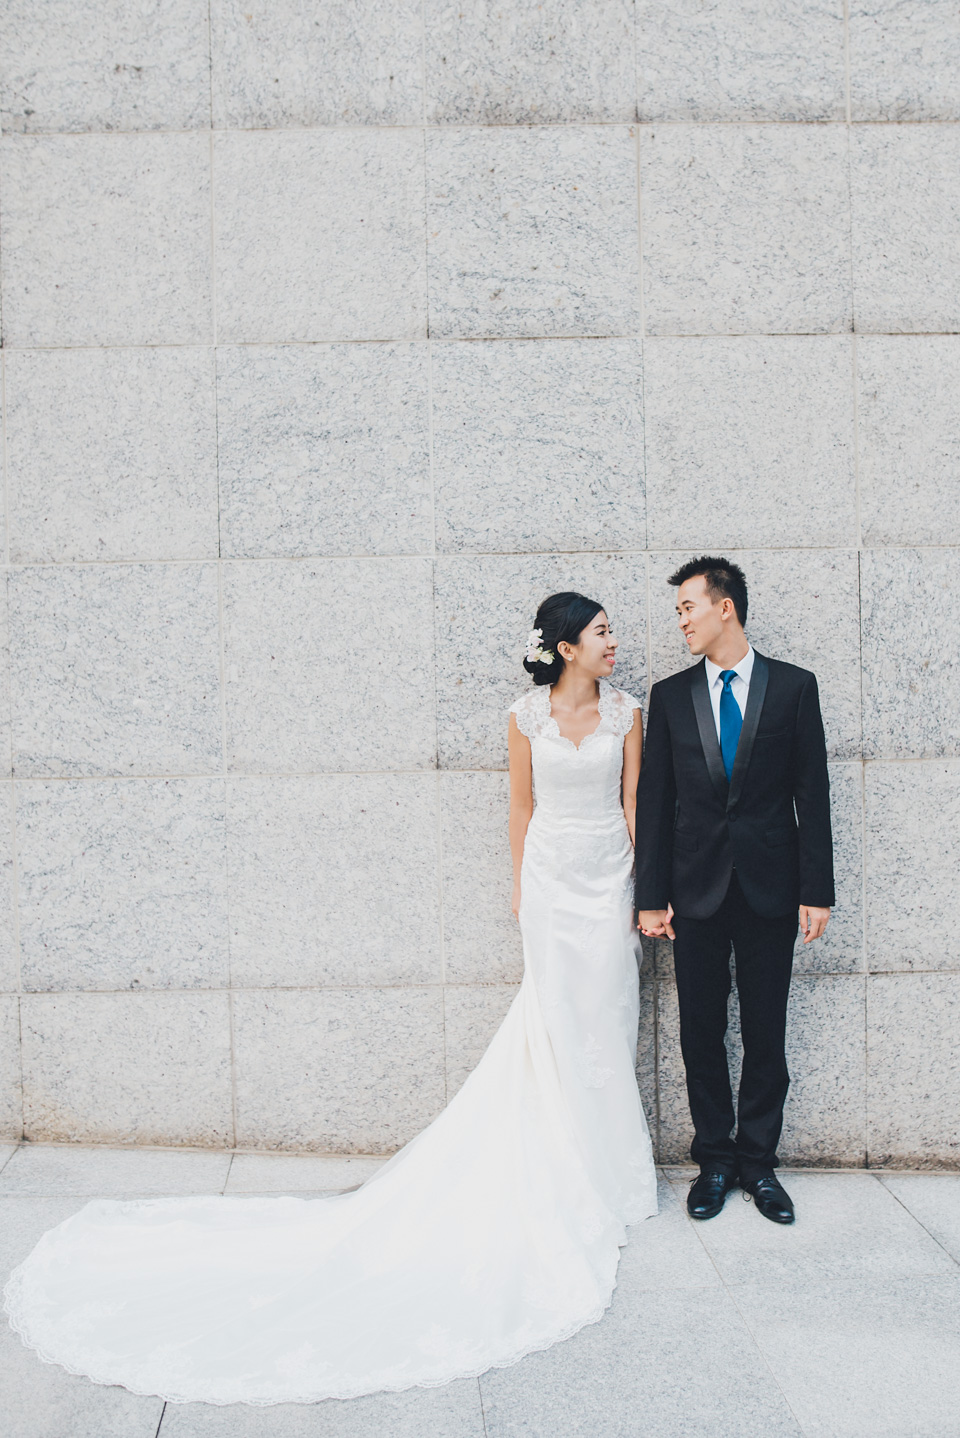 hongkong-wedding-photo-video-125